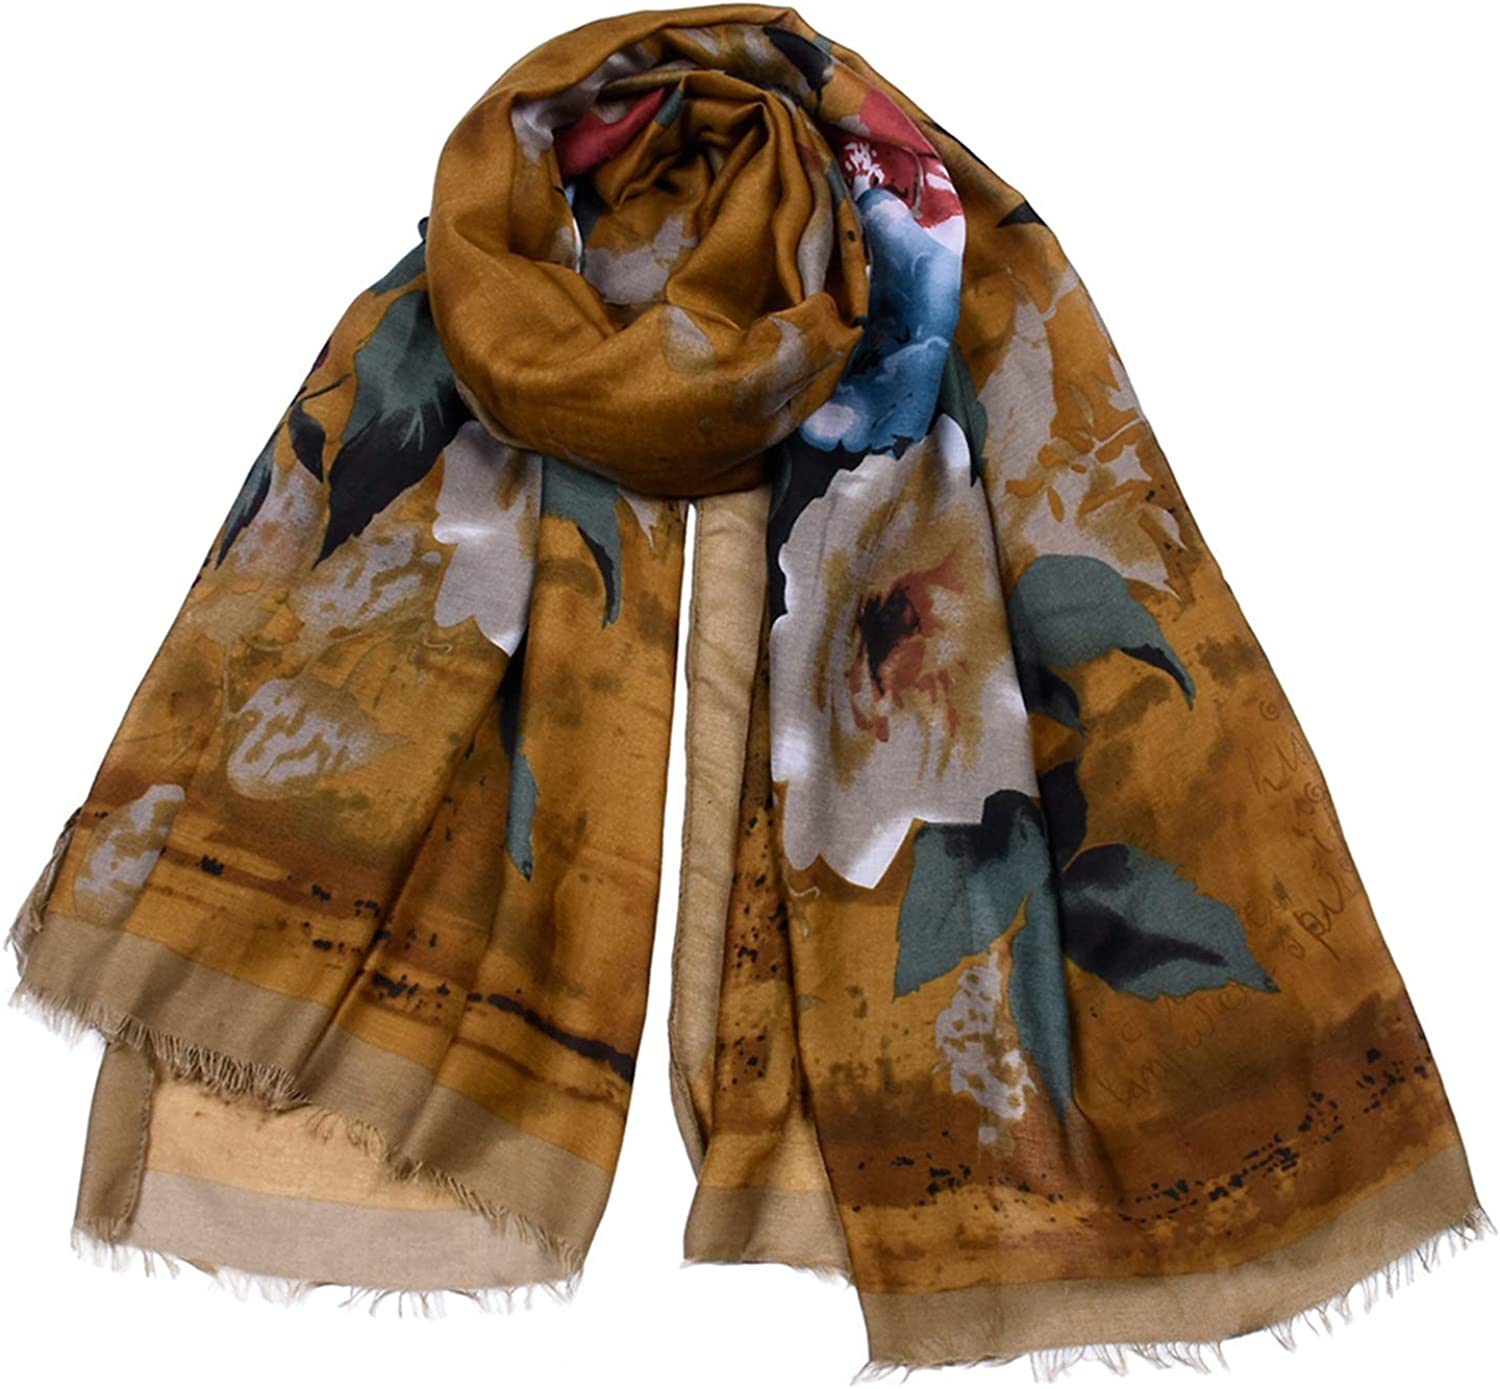 Beautiful Design Fashion Scarf Large Cotton Flower Print Tassel Elegant Shawl for Ladies Four Seasons MultiFunction AntiCold air Conditioning Sunscreen Beach Scarf (color   Camel)